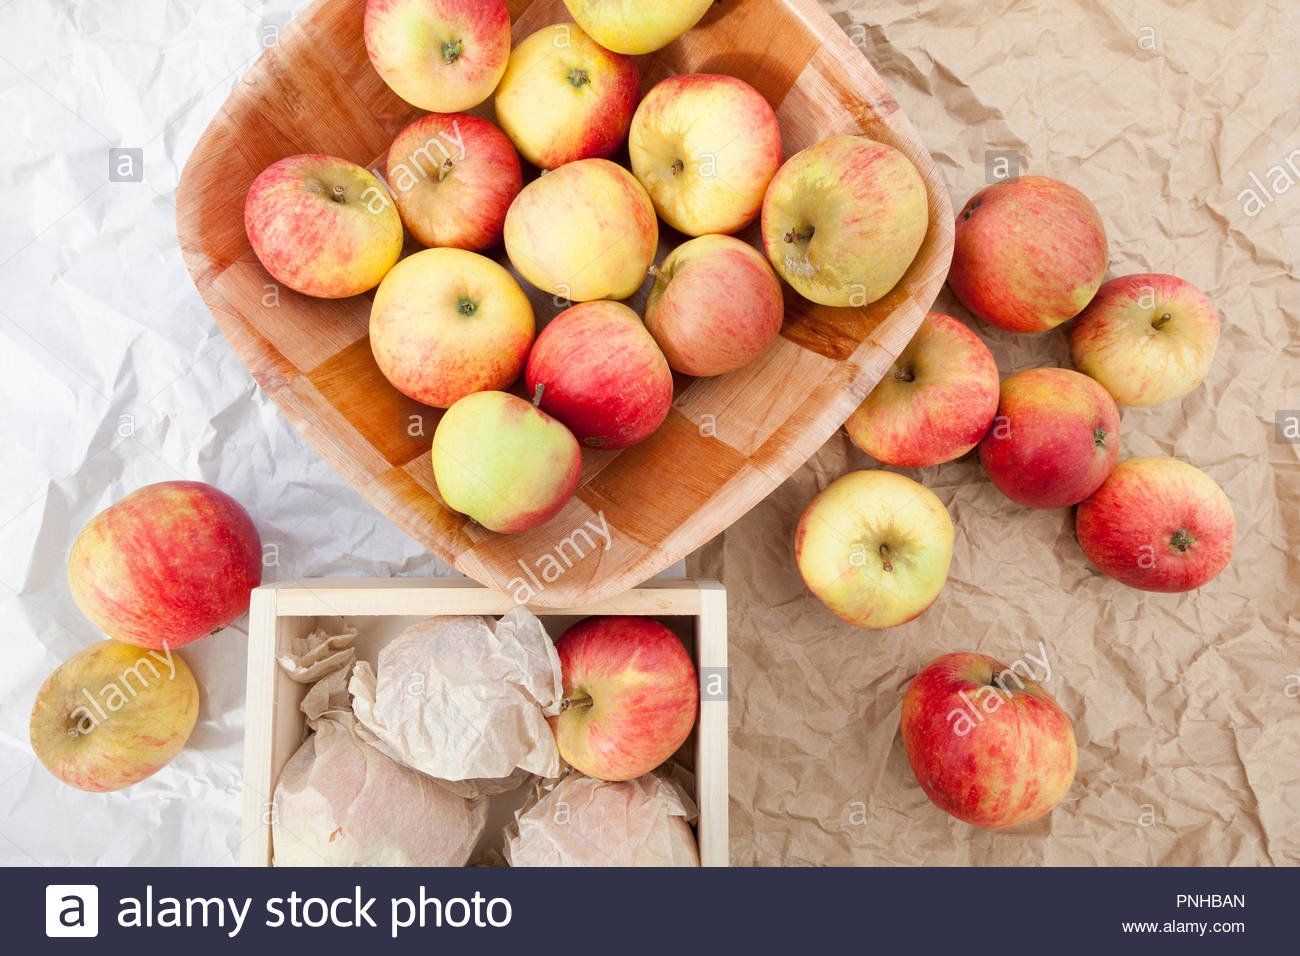 Apples in boxes - some wrapped and ready for storing - Stock Image